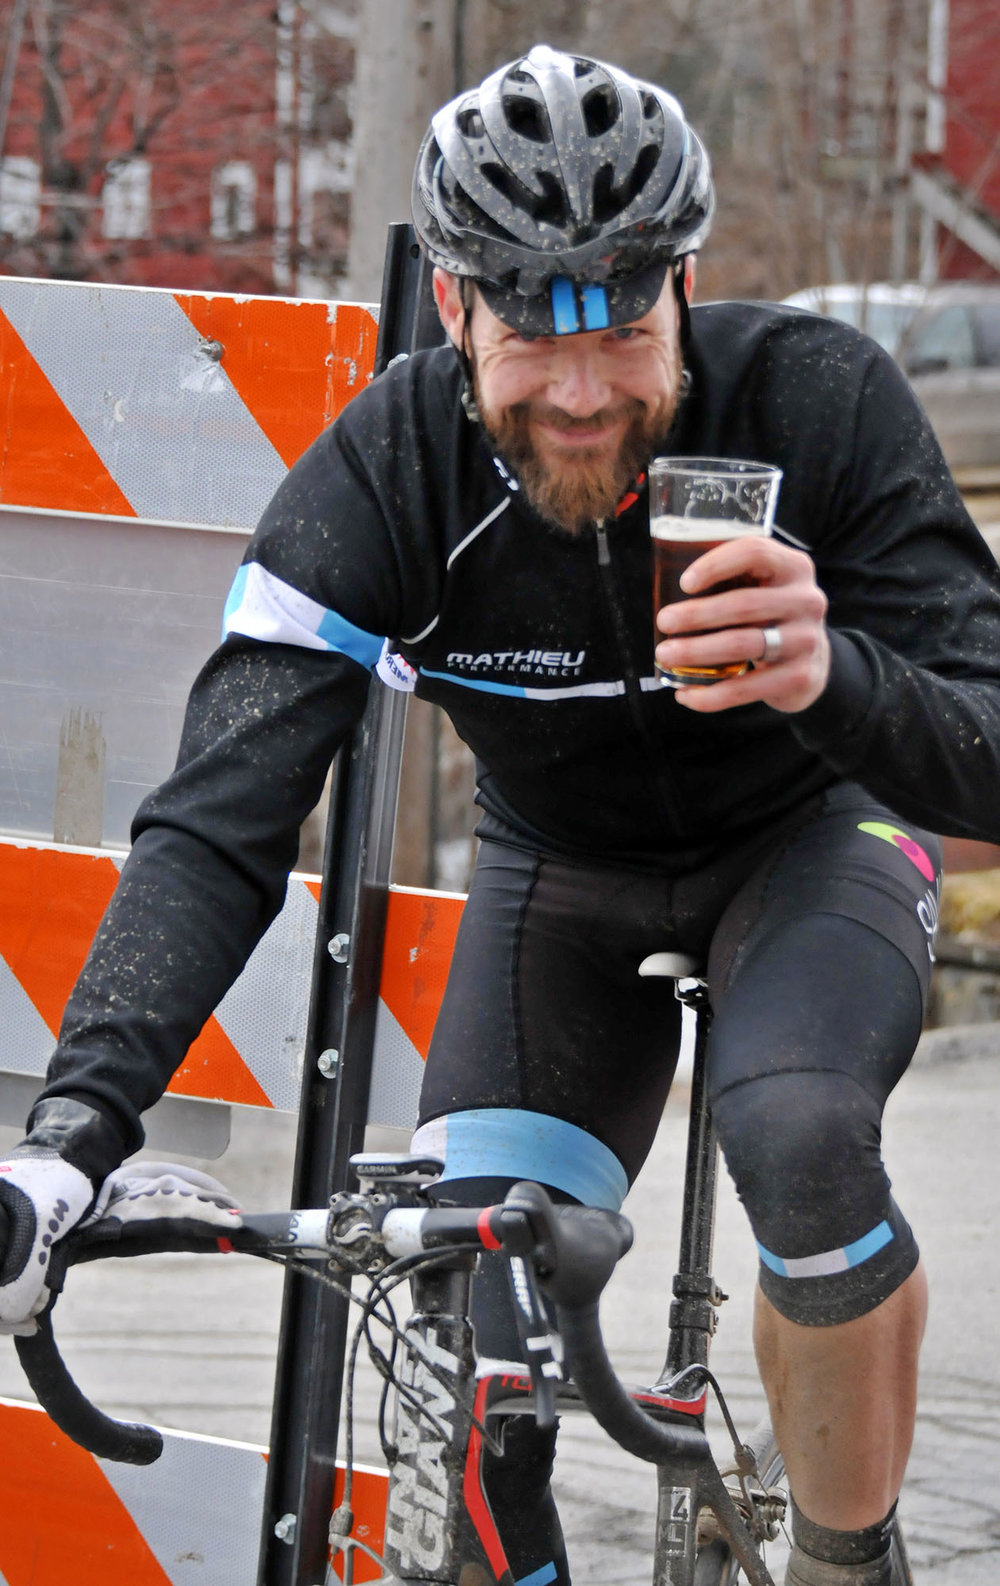 Brown's Brewing is a sponsor of the race and this rider is celebrating achieving his race finish goal.  © Dave Kraus/  krausgrafik.com